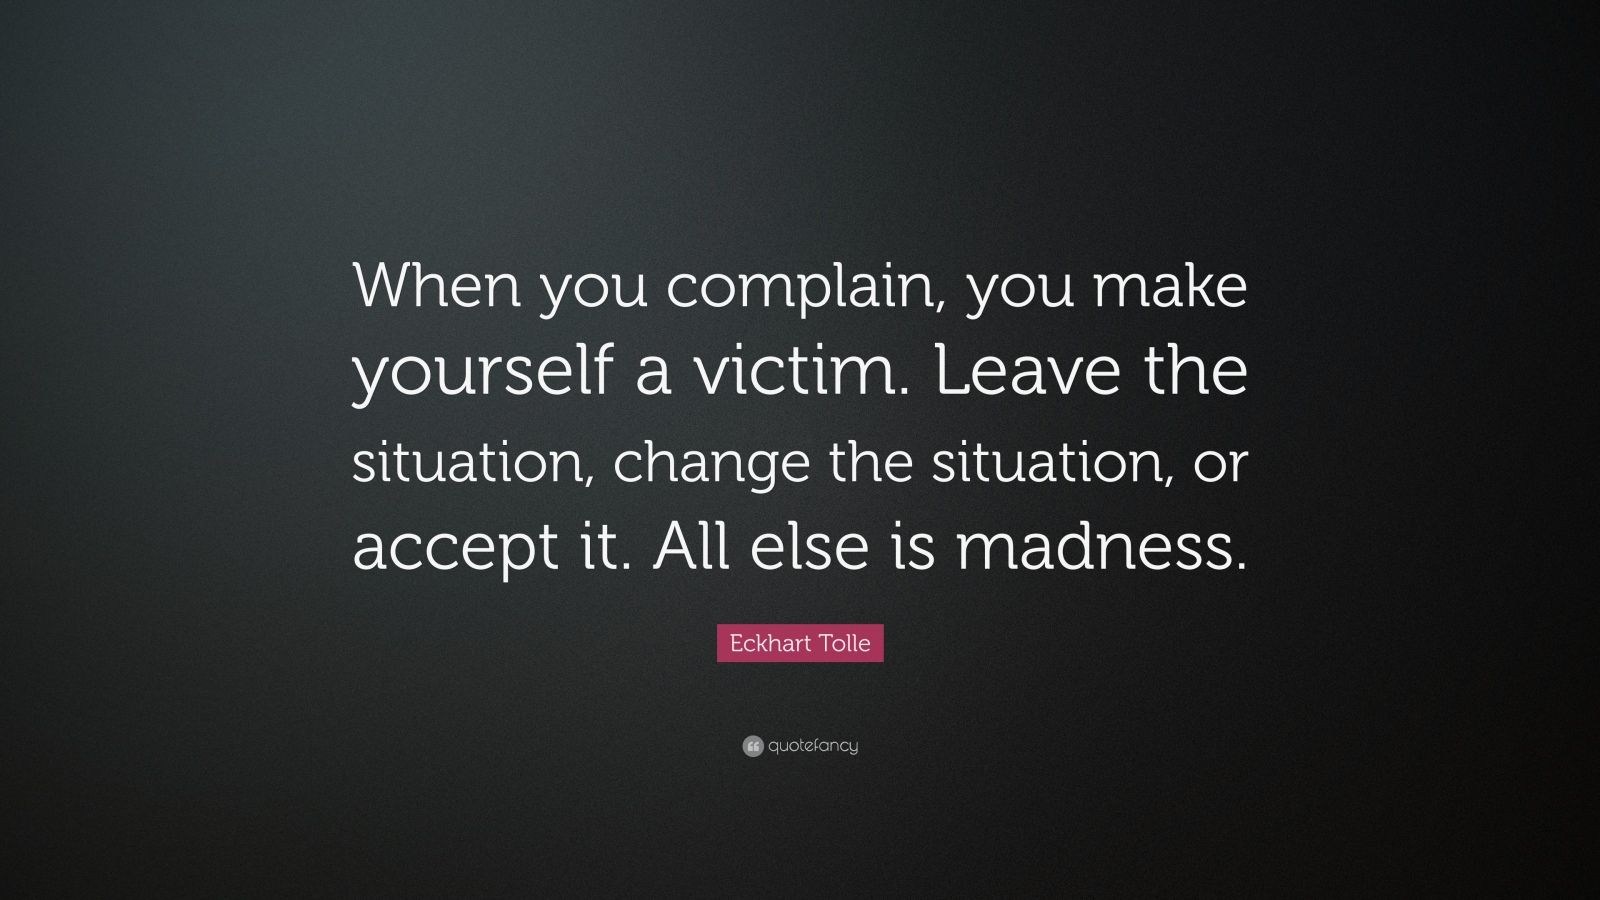 """Eckhart Tolle Quote: """"When you complain, you make yourself a victim. Leave the situation, change the situation, or accept it. All else is madness."""""""